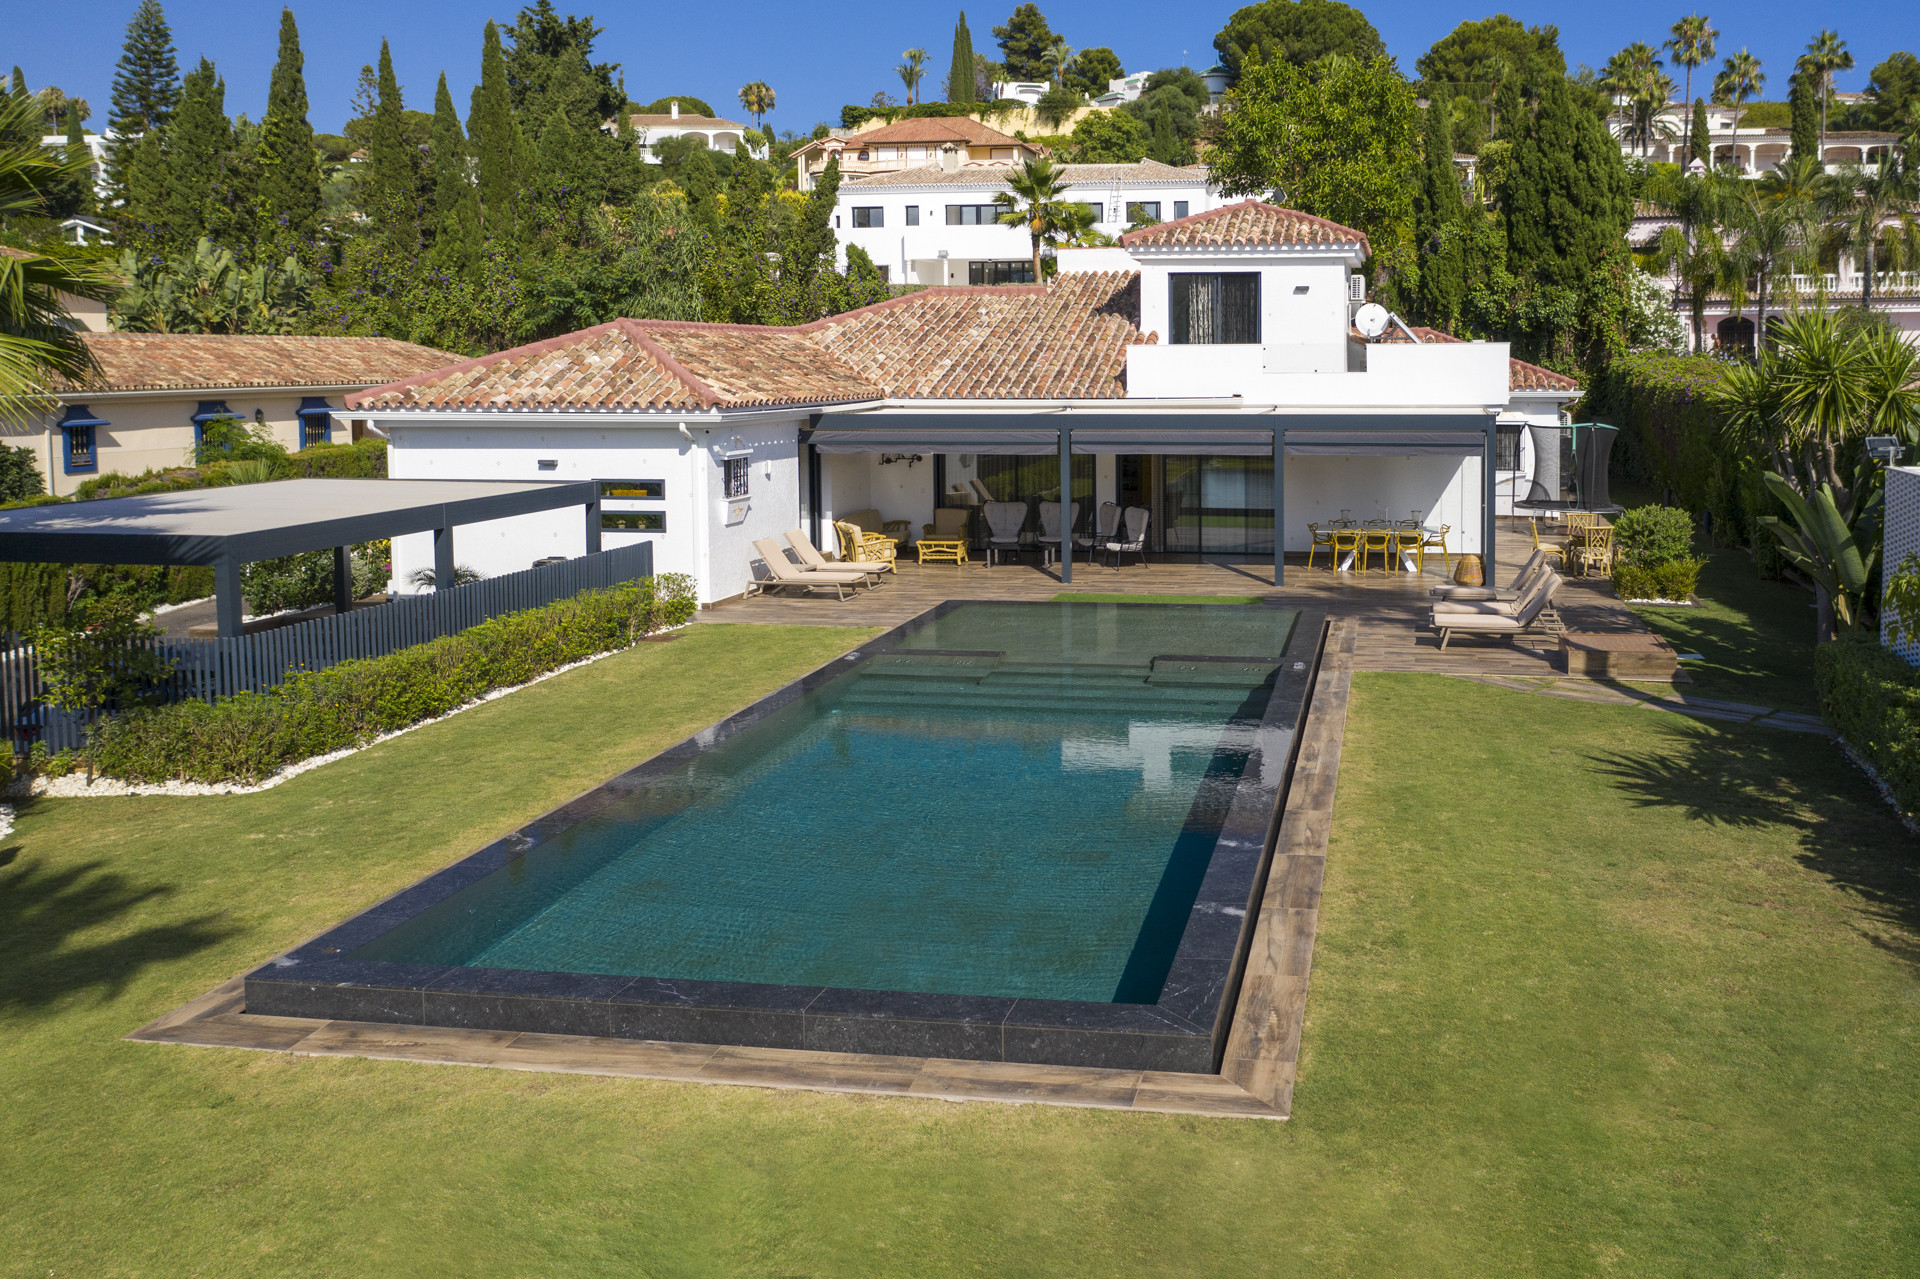 Villa for sale in <i>El Paraiso, </i>Estepona